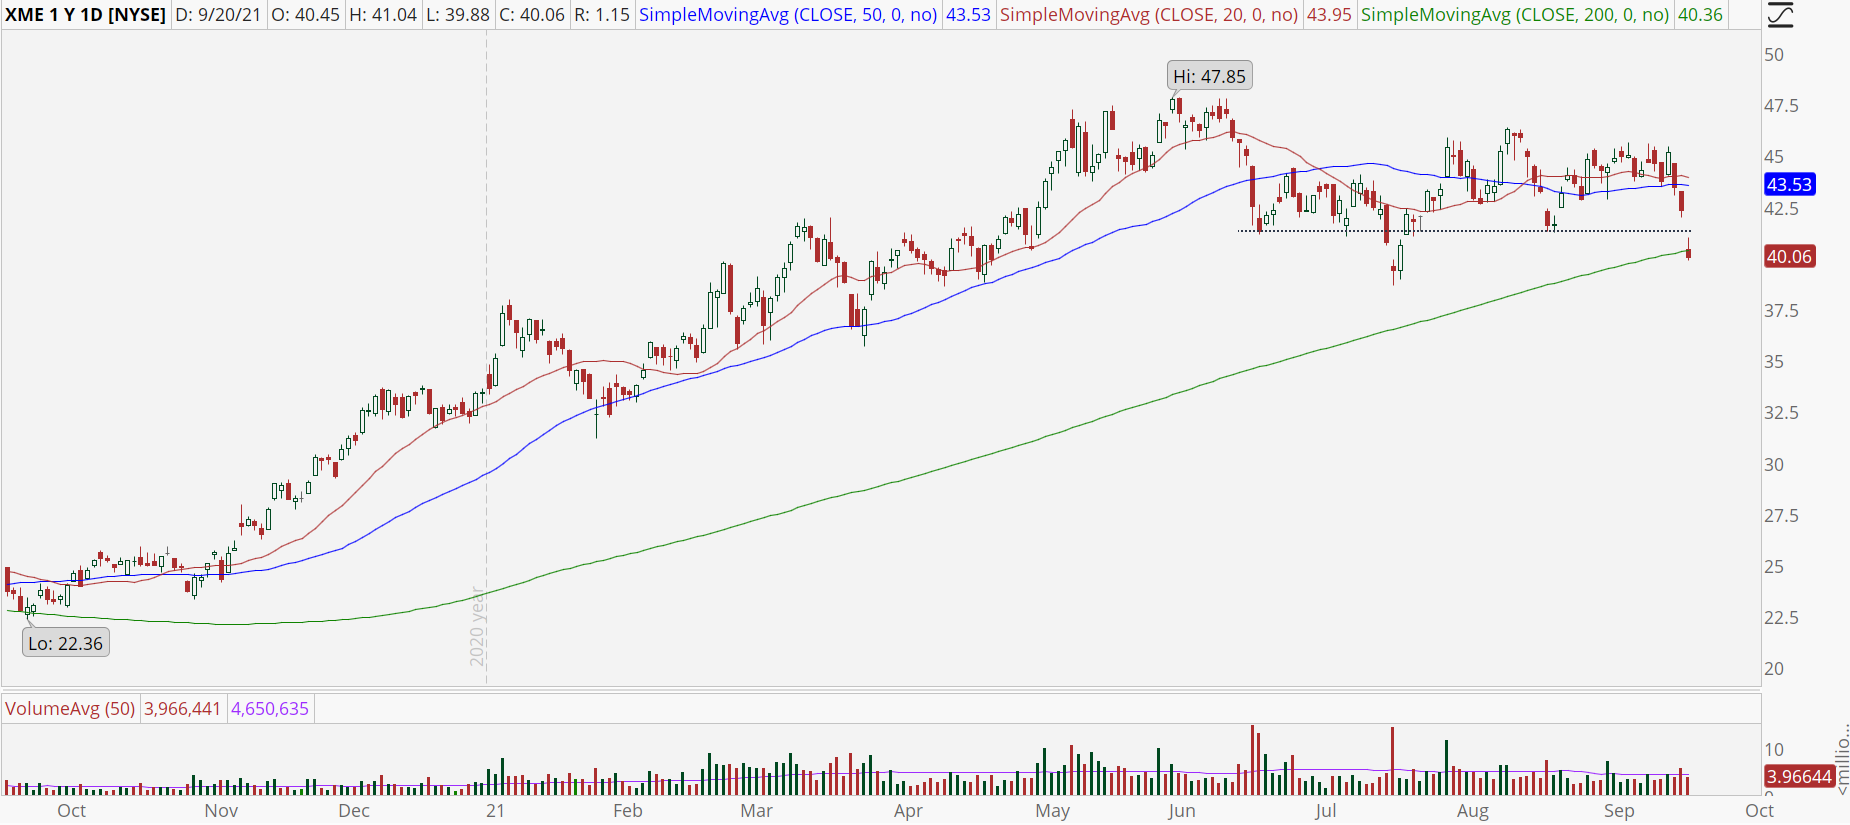 S&P Metals & Mining ETF (XME) with support break